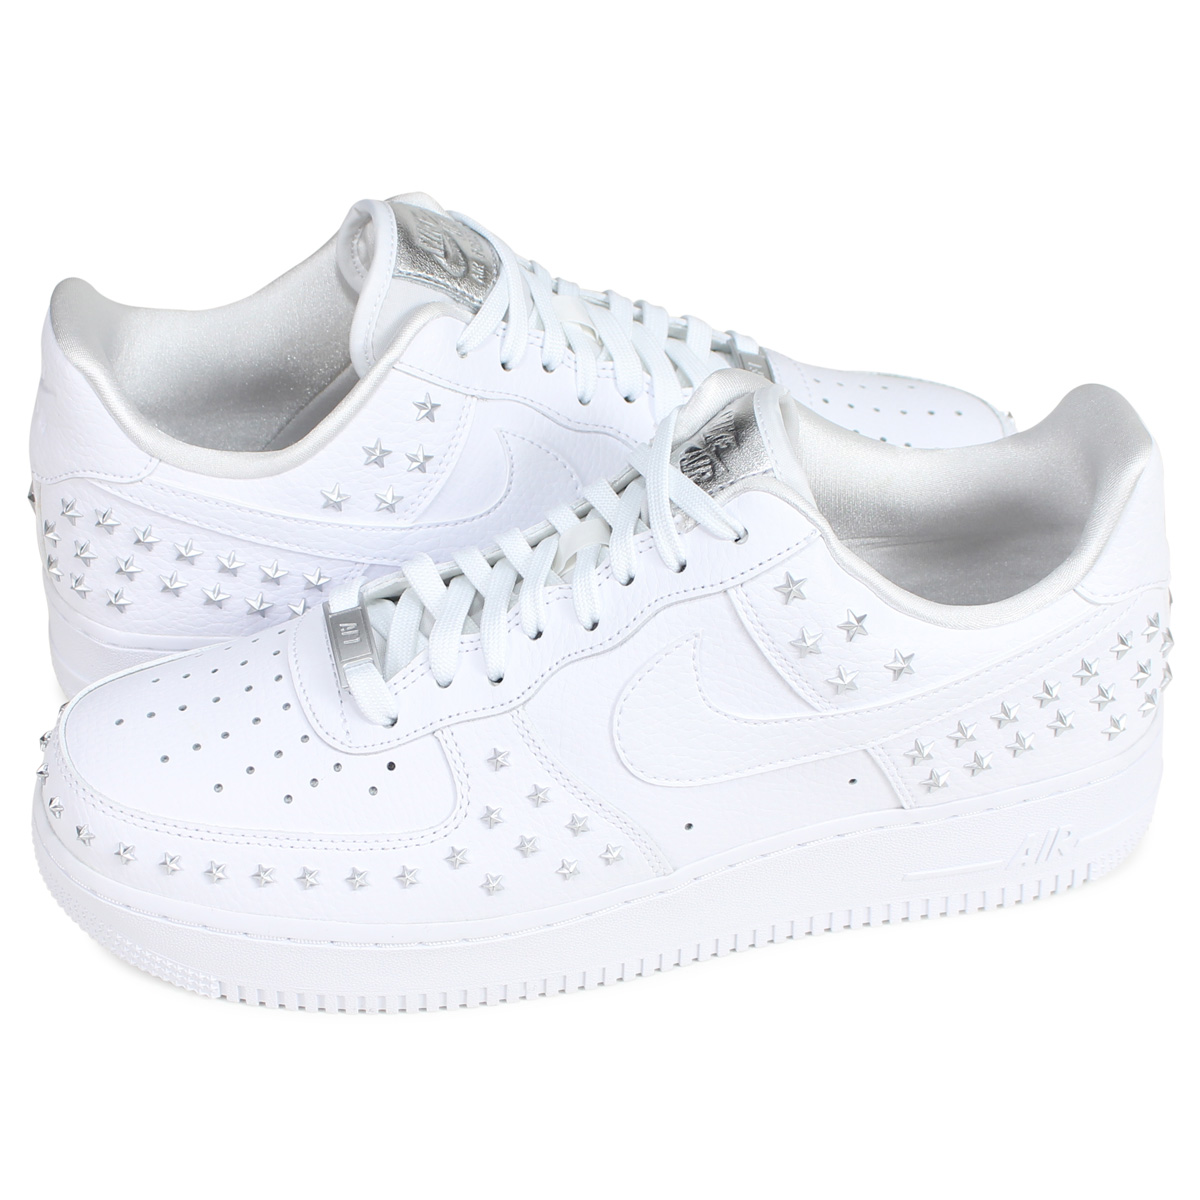 Nike NIKE air force 1 sneakers men WMNS AIR FORCE 1 07 XX white white AR0639 100